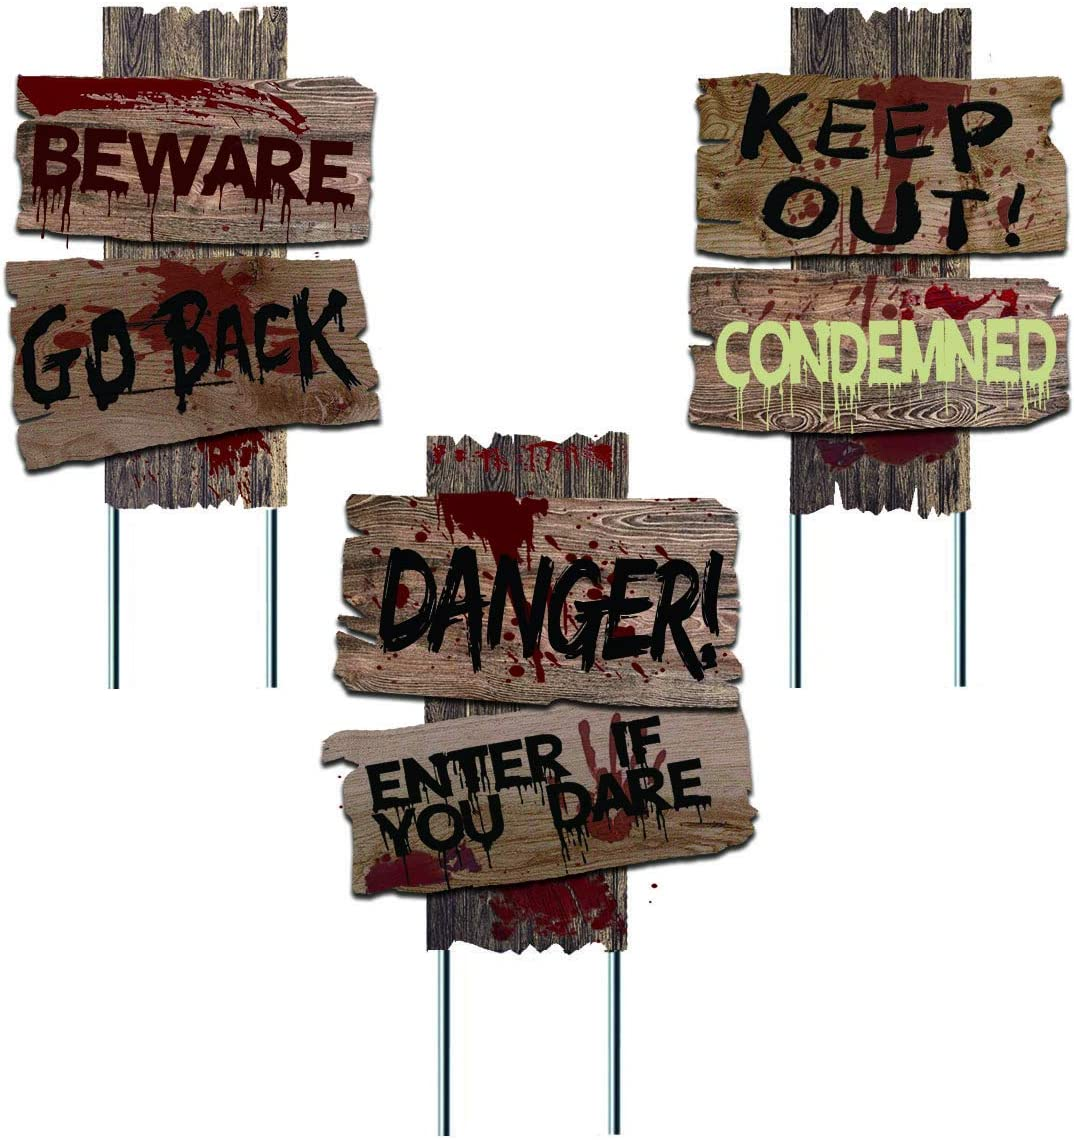 Liecho Pack of 3 Halloween Decorations Yard Signs Stakes Props Outdoor Decor Scary Zombie Vampire Graves Holiday Party Supplies,Double-Sided Printing (15x12 inches)